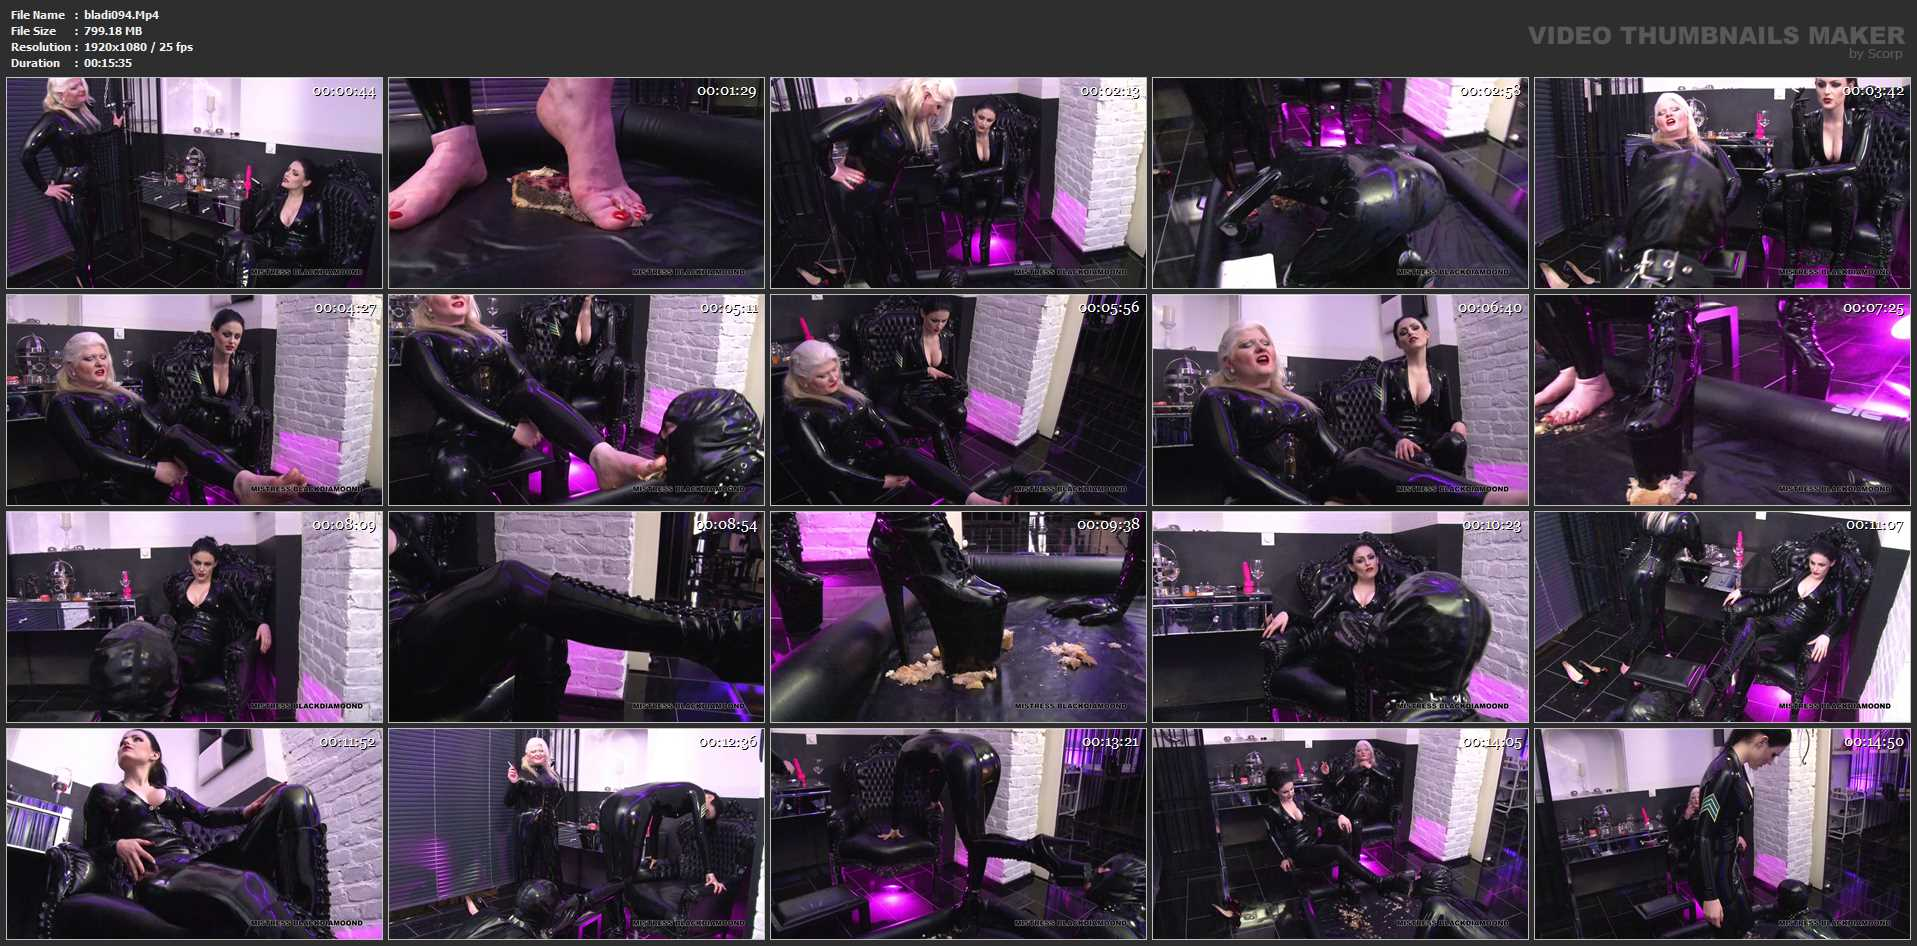 Mistress Blackdiamoond In Scene: Crushing In Latex Part 1 - CLIPS4SALE / BLACKDIAMOOND - FULL HD/1080p/MP4